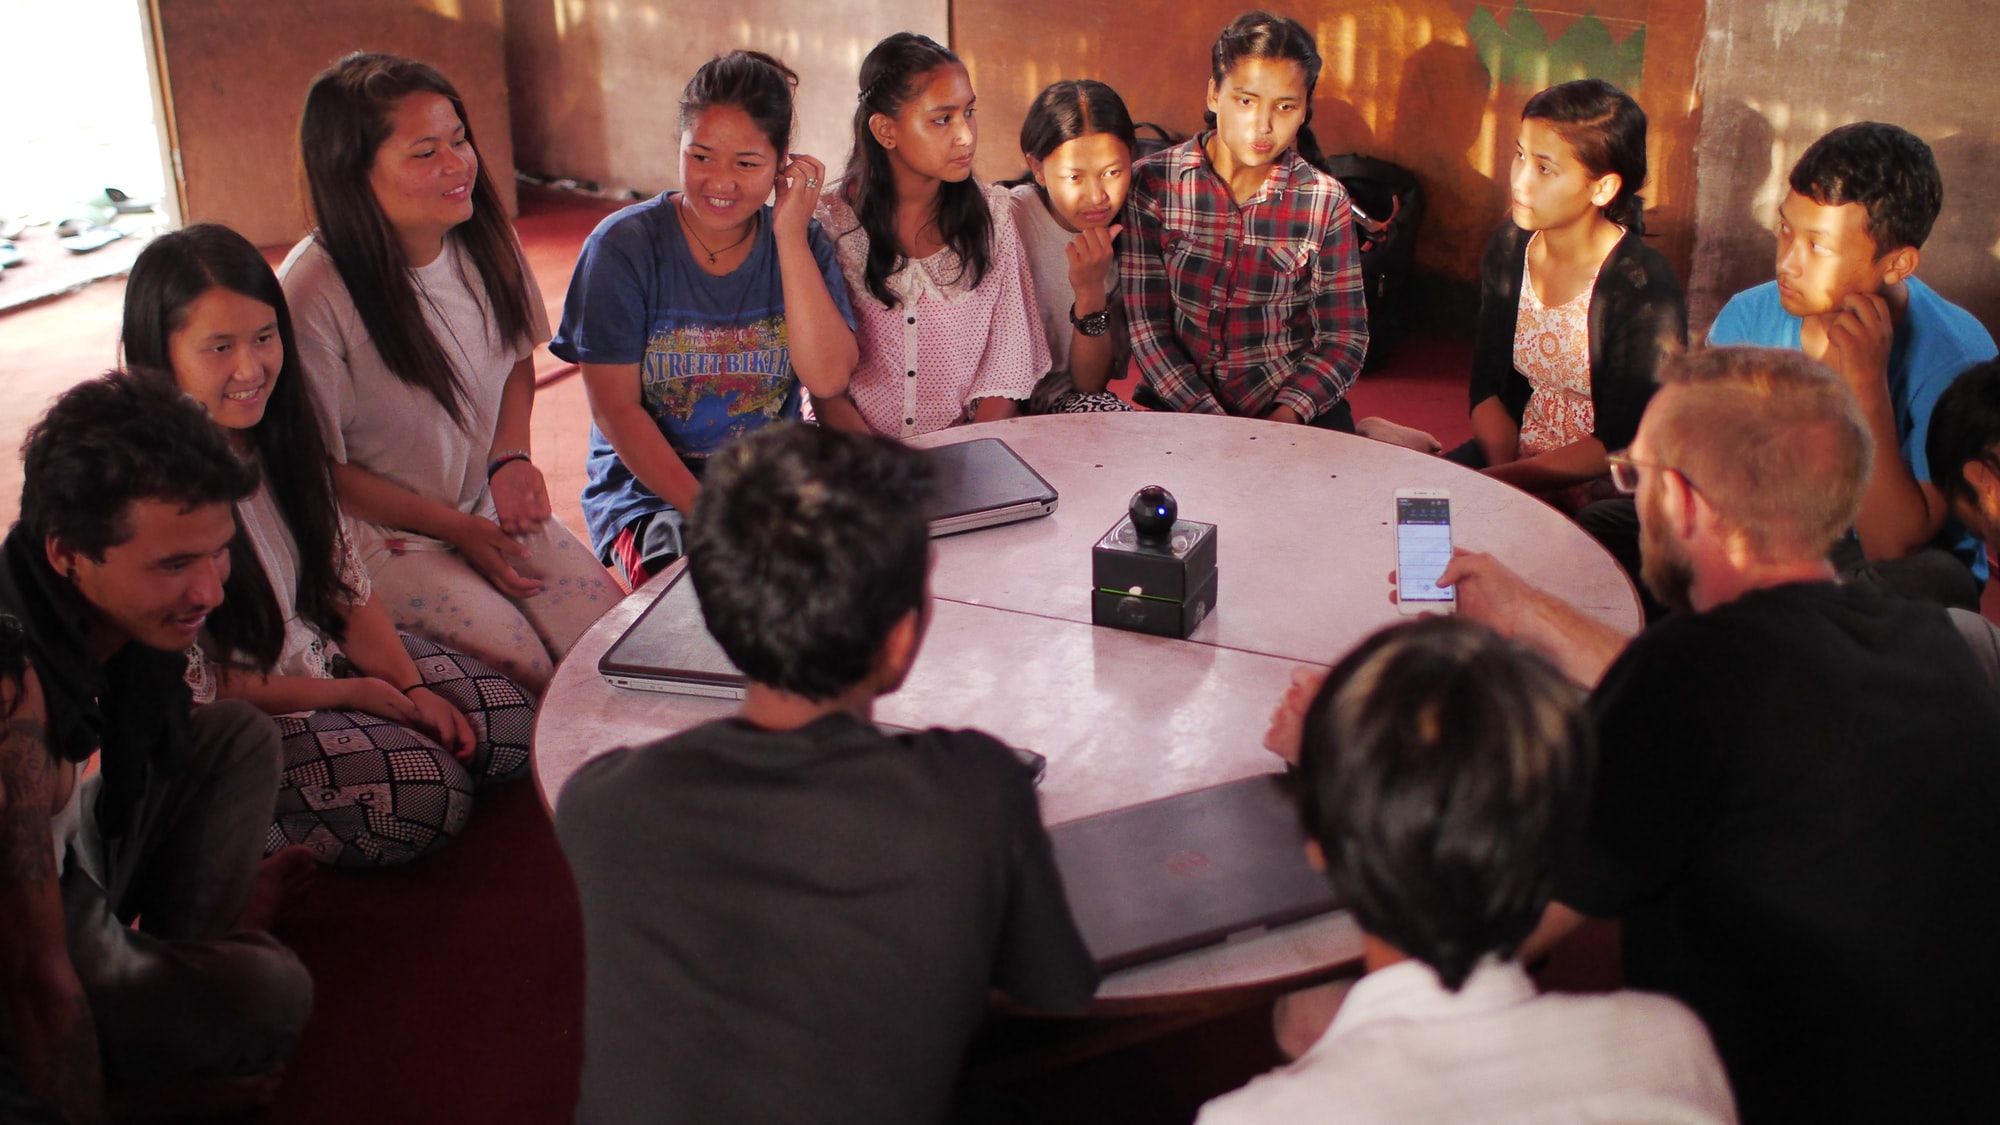 We were in one of the slums in Kathmandu. Kids, there are still deprived of access to the technology. We are there to break that barrier and give new opportunities.  @DisasterHack